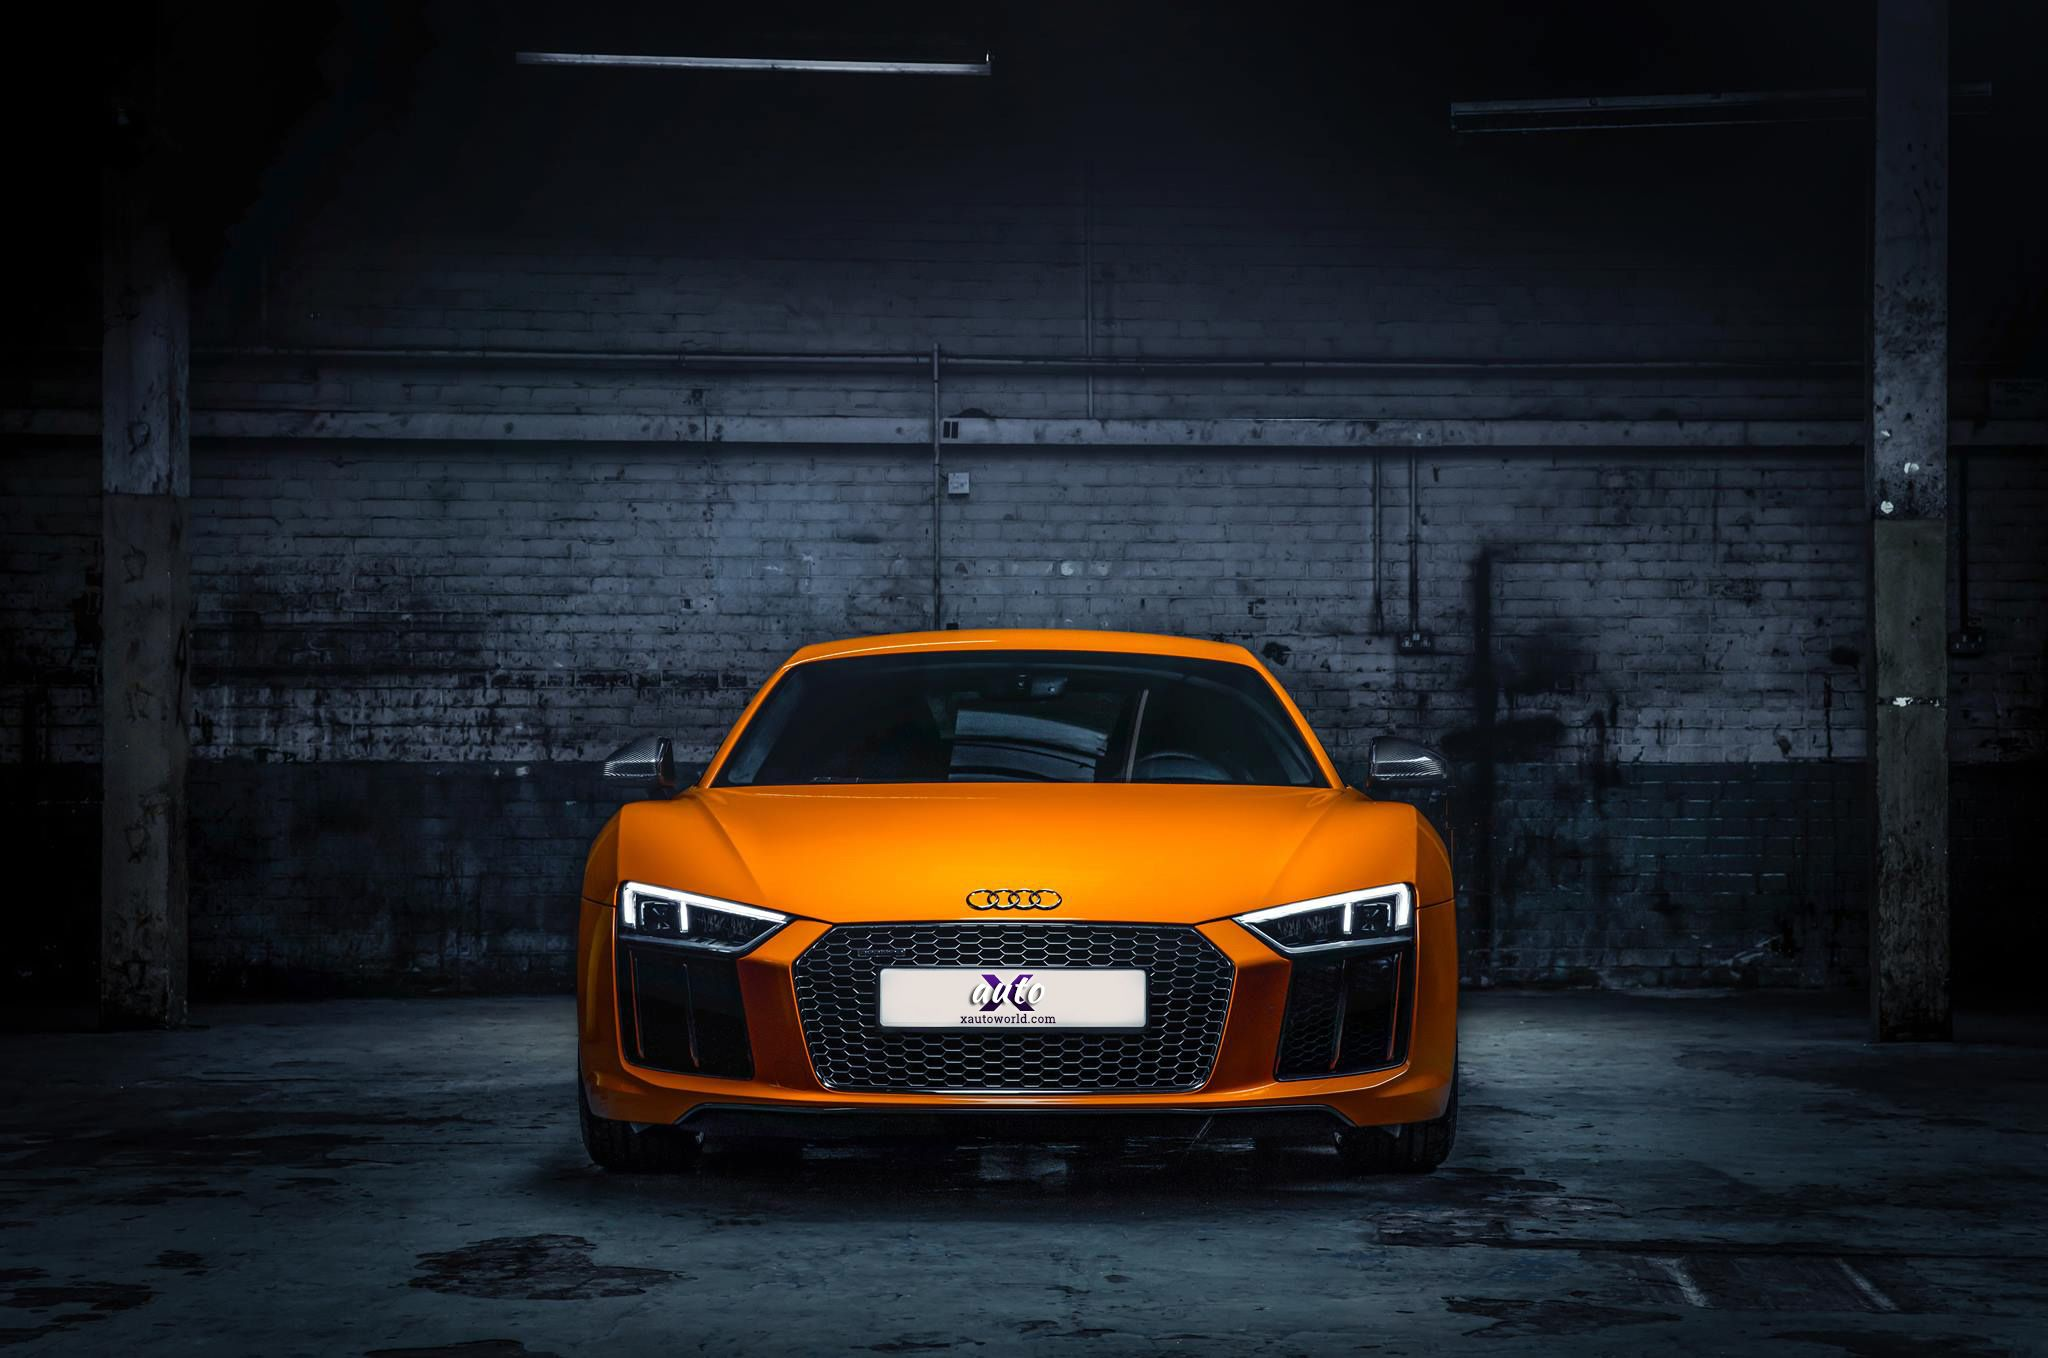 Hd Wallpapers Of Audi Bmw Mercedes Ferrari And Other Cars Audi Sports Car Audi R8 Spyder Audi R8